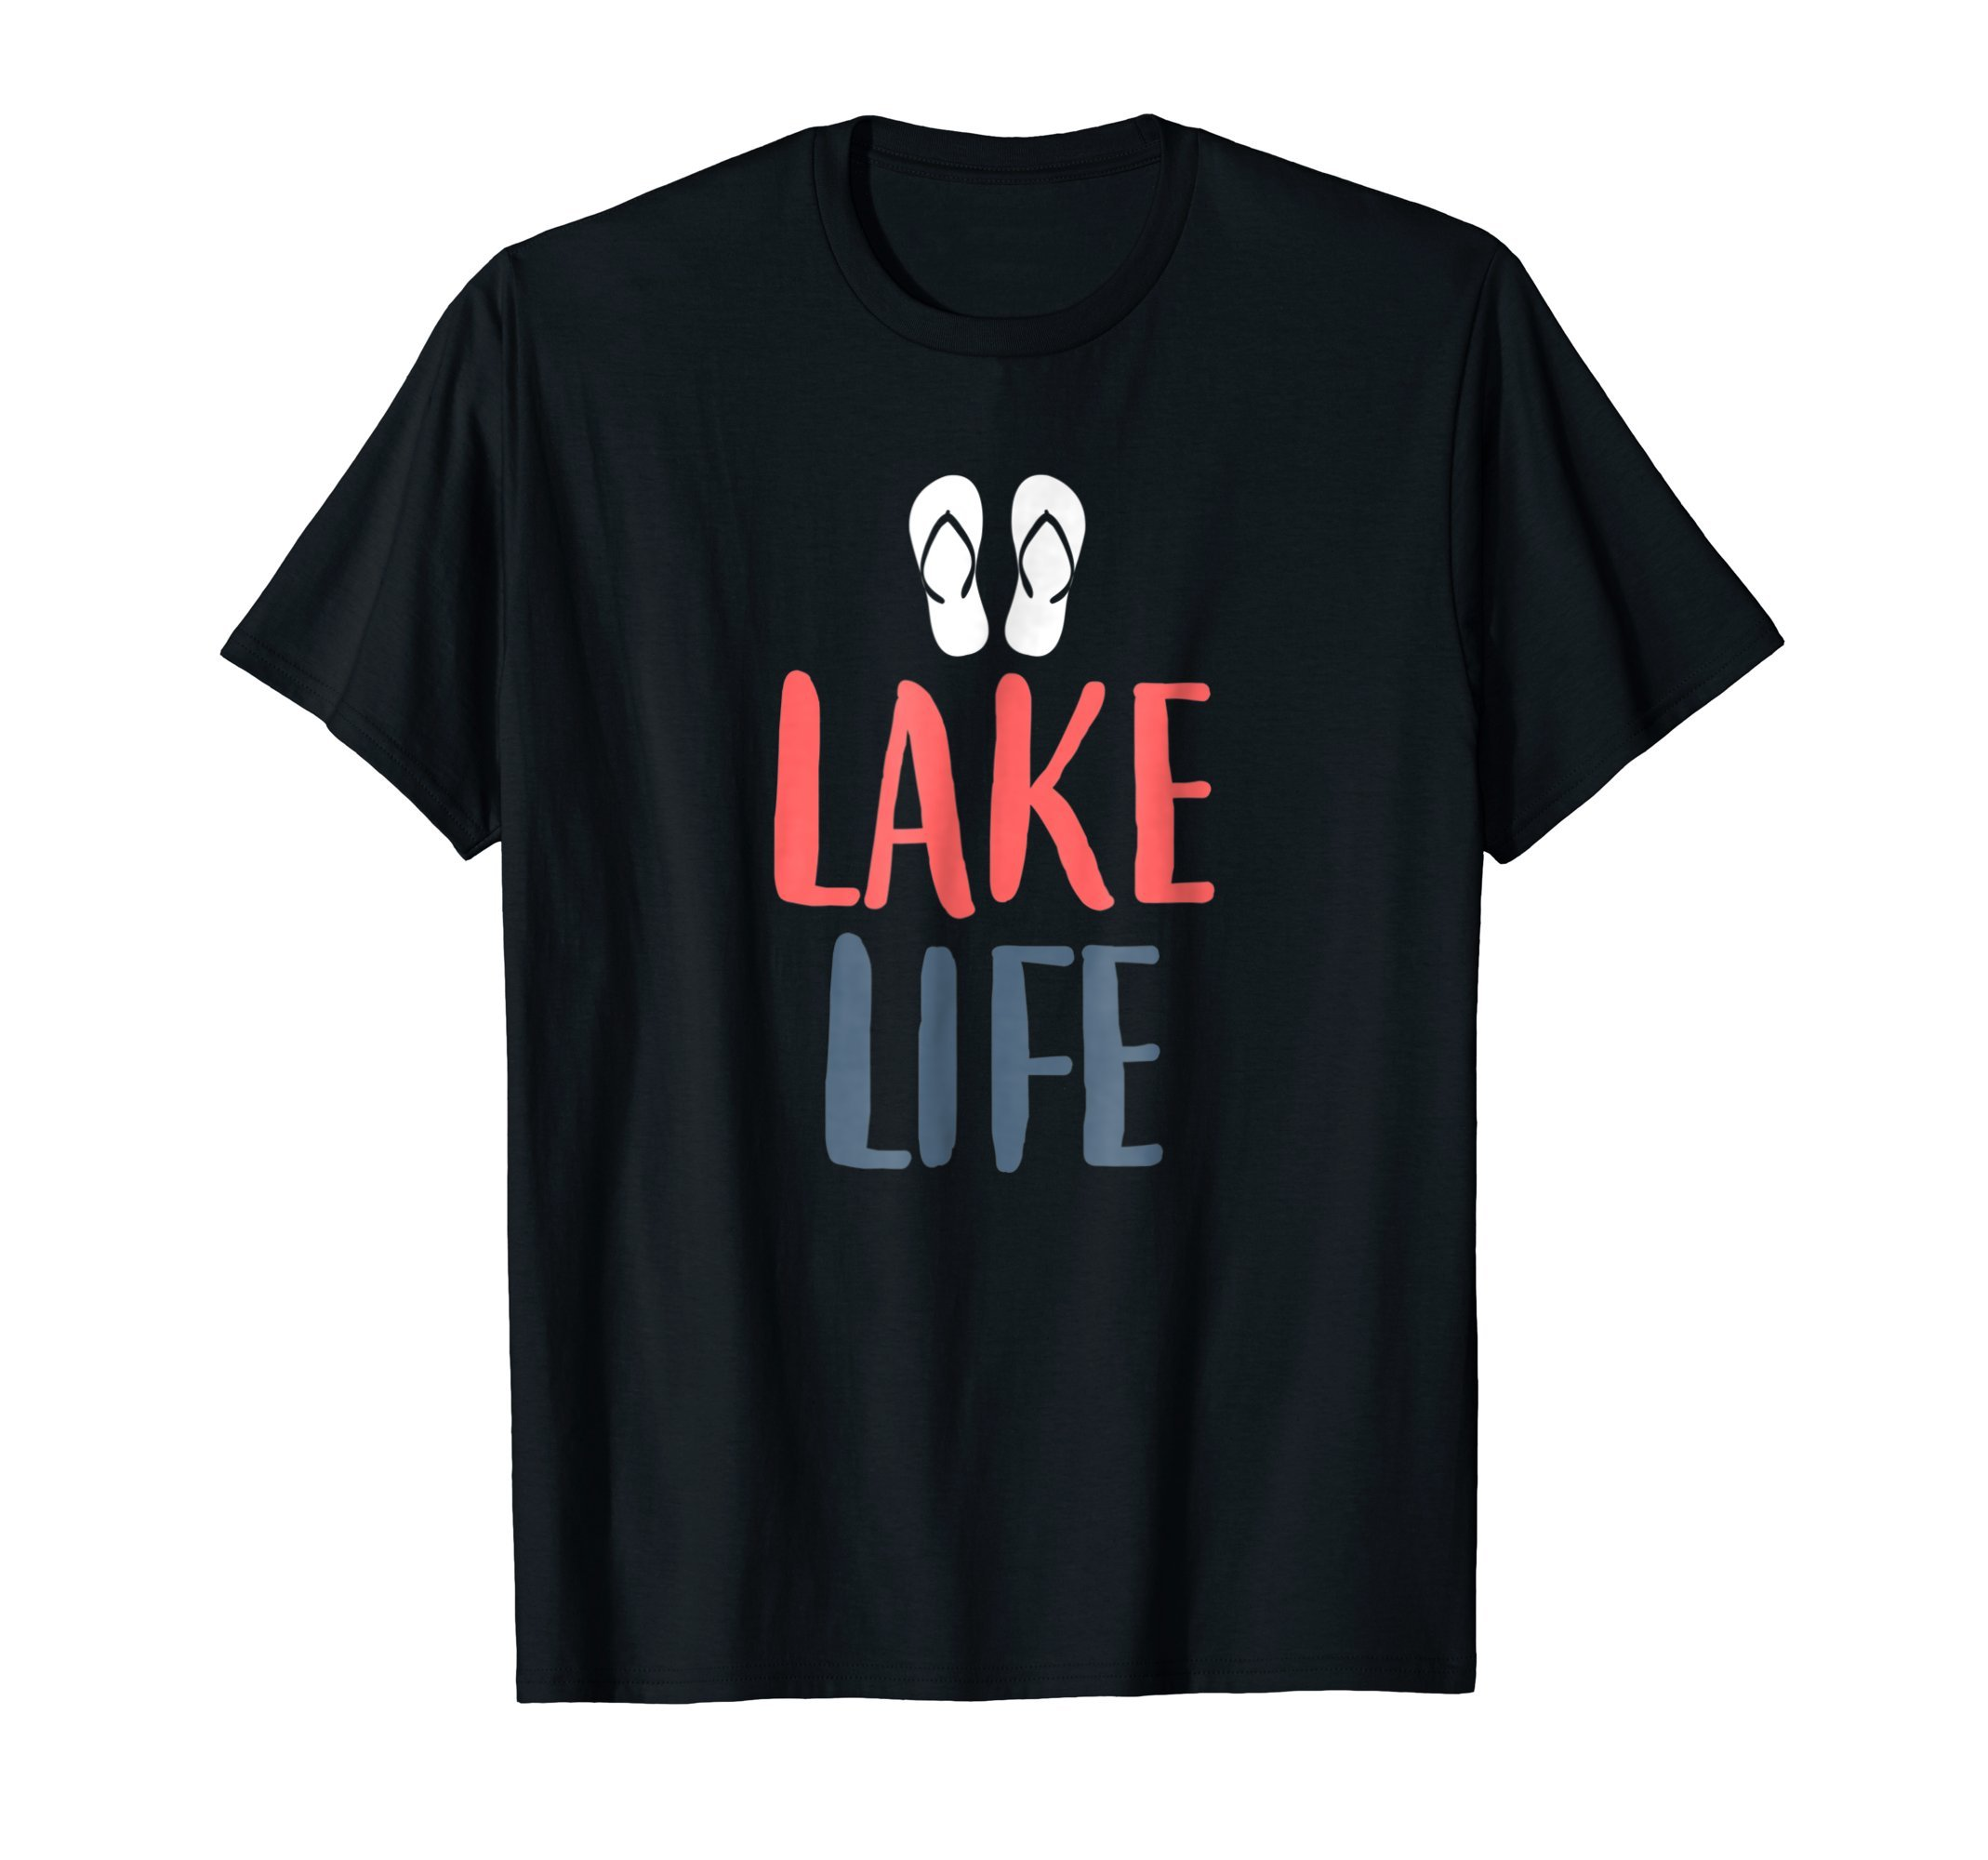 Lake Life Flip Flops Cute TShirt Men Women Beaches by Life Is Better At The Lake (Image #1)